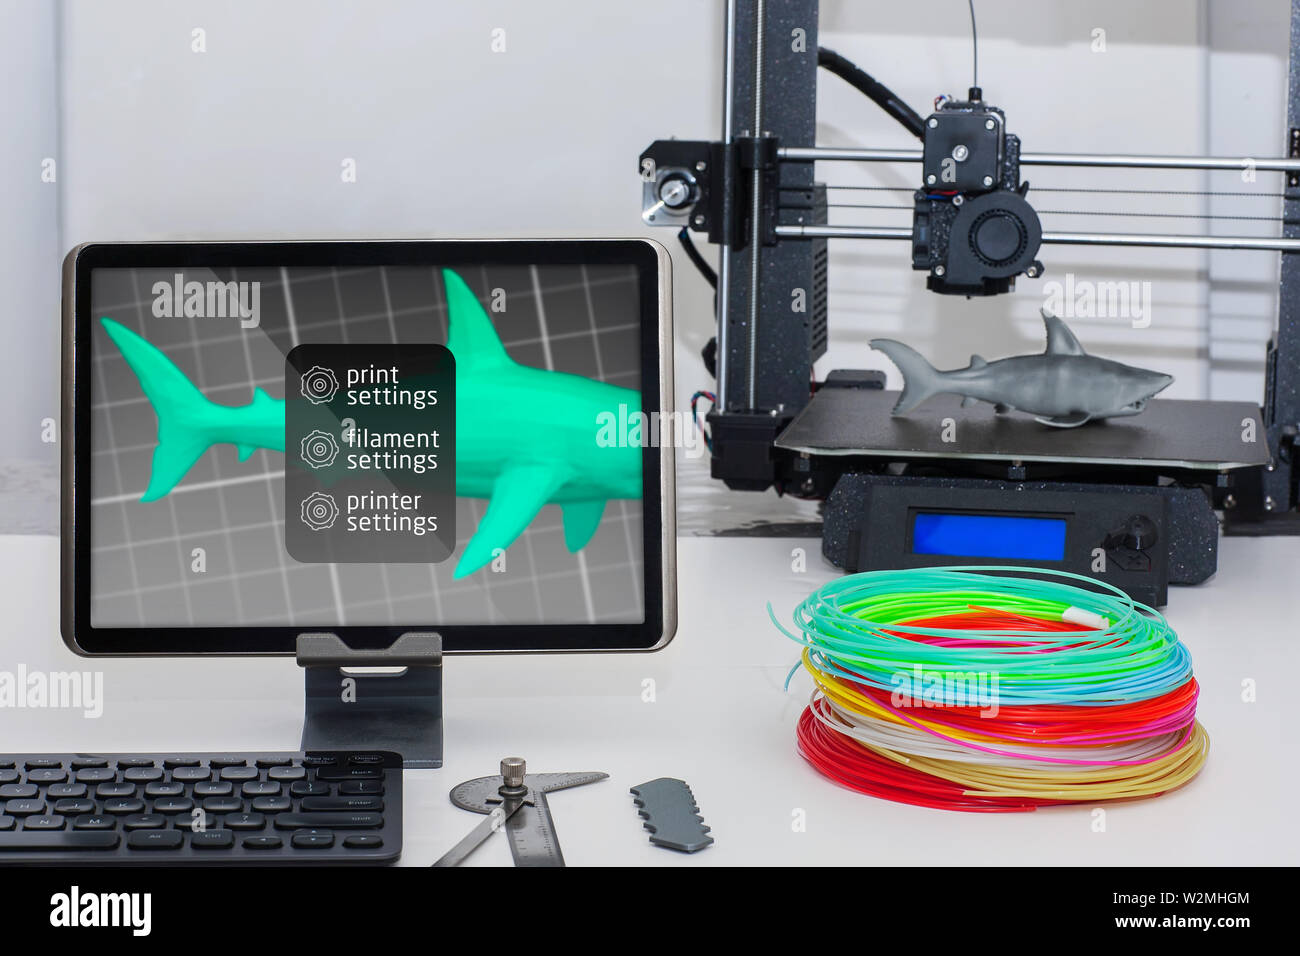 a wireless 3d printer setup using a tablet monitor, keyboard and 3d printing  filament and machine